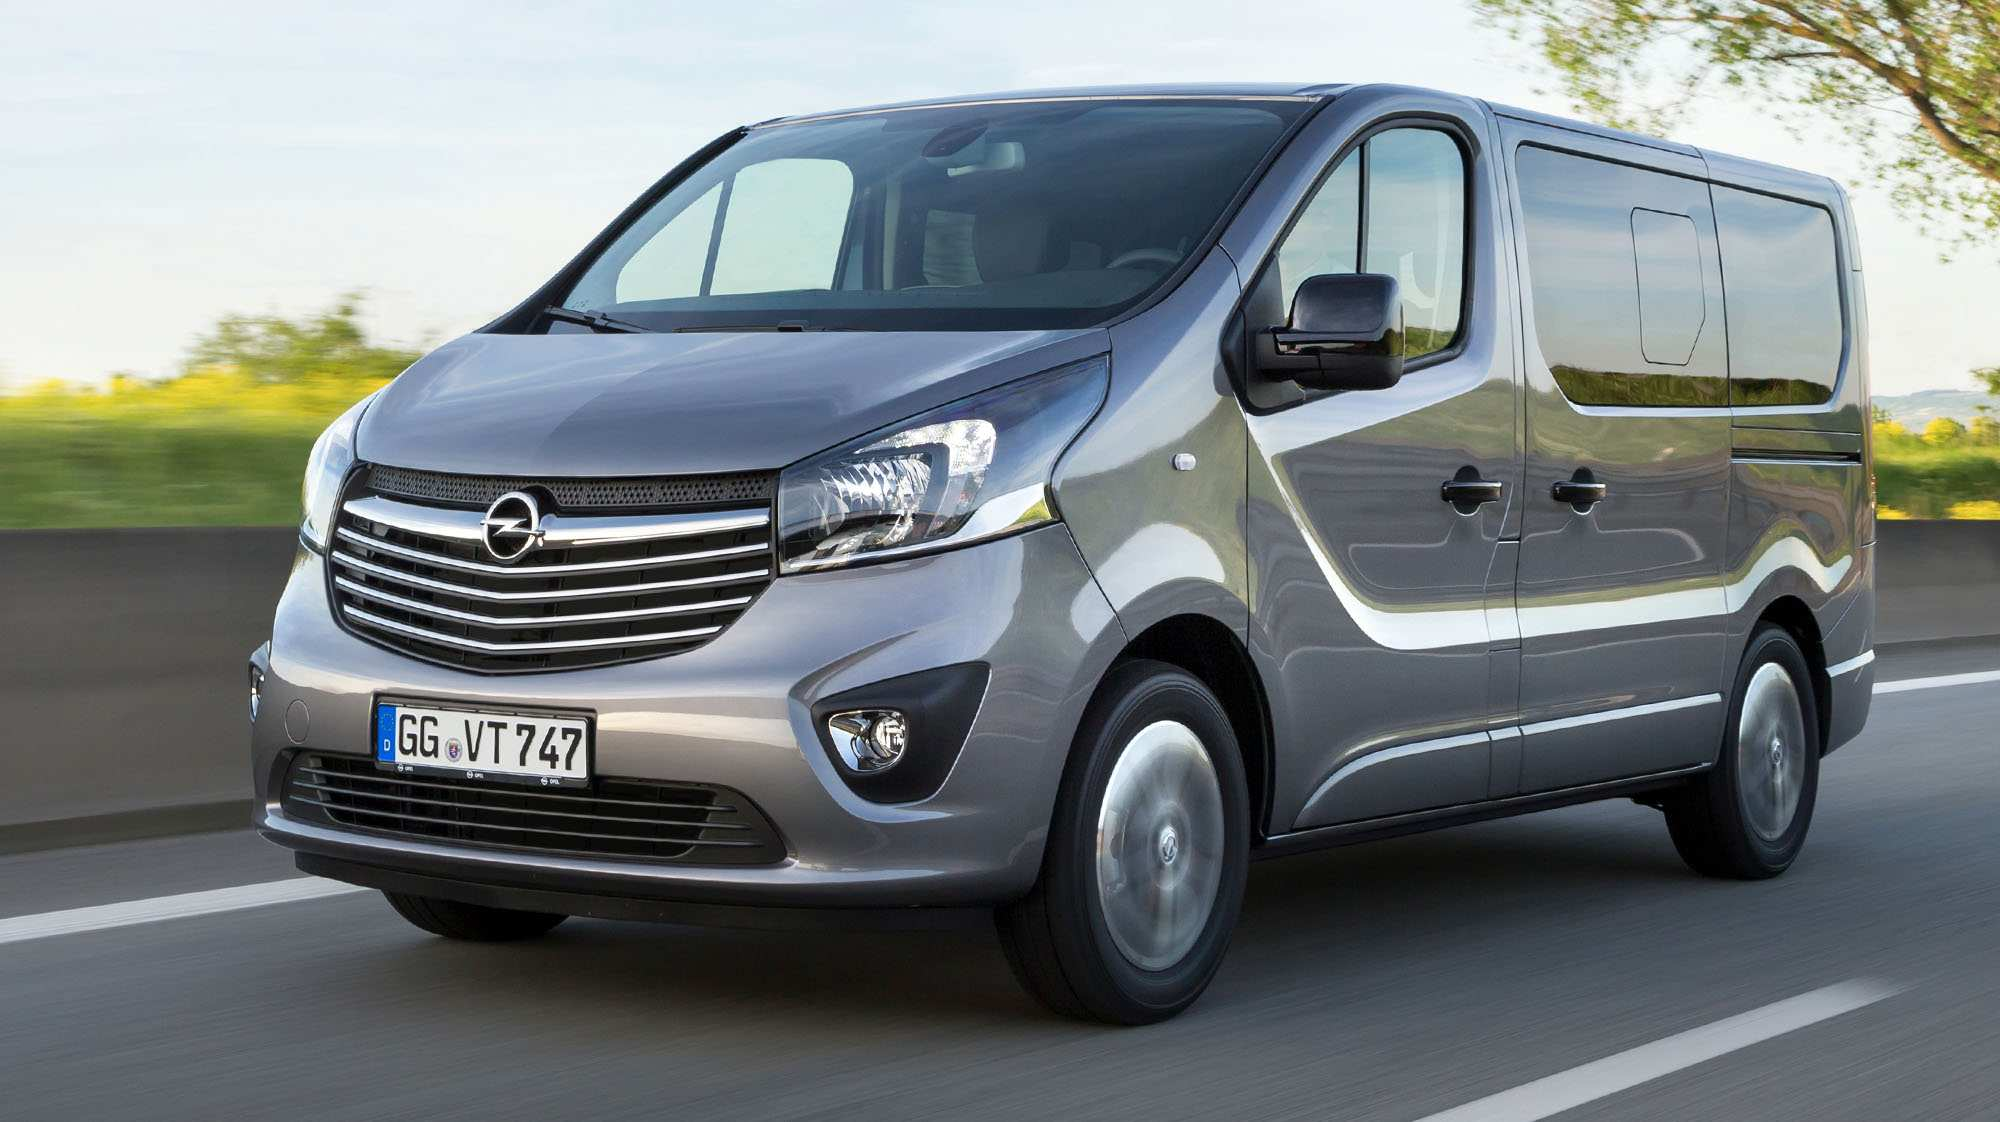 12 Concept of 2019 Opel Vivaro Images for 2019 Opel Vivaro